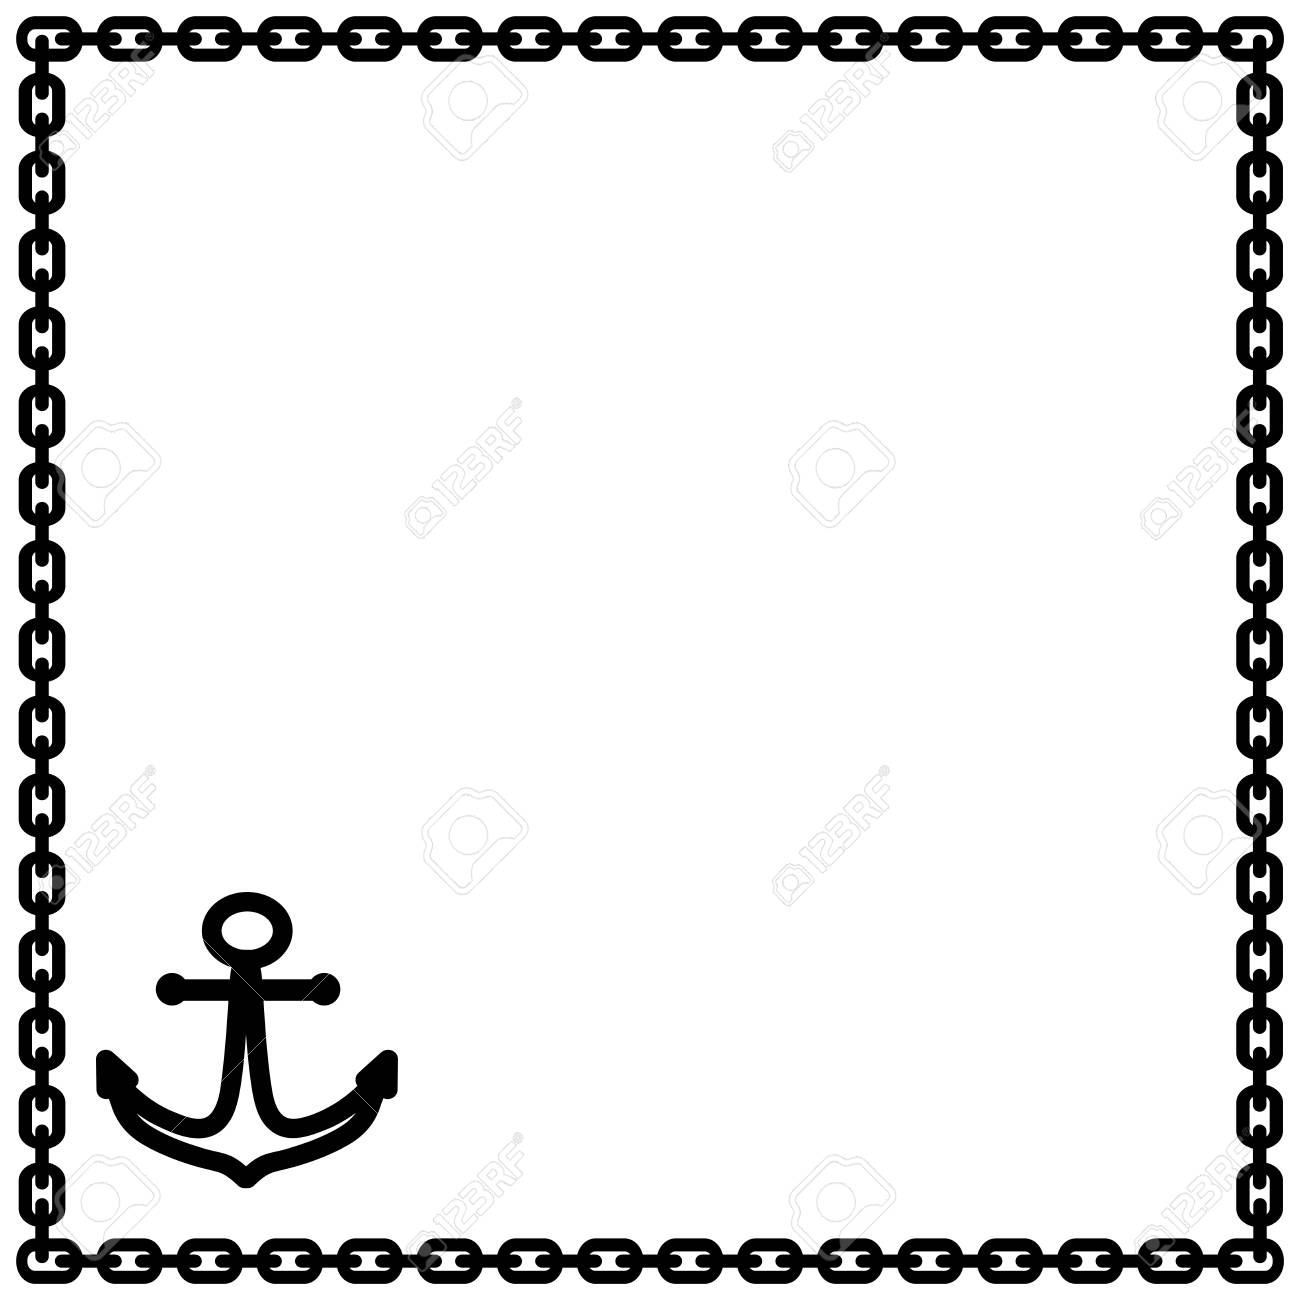 Marine frame. Black framework isolated on white background. Decoration...